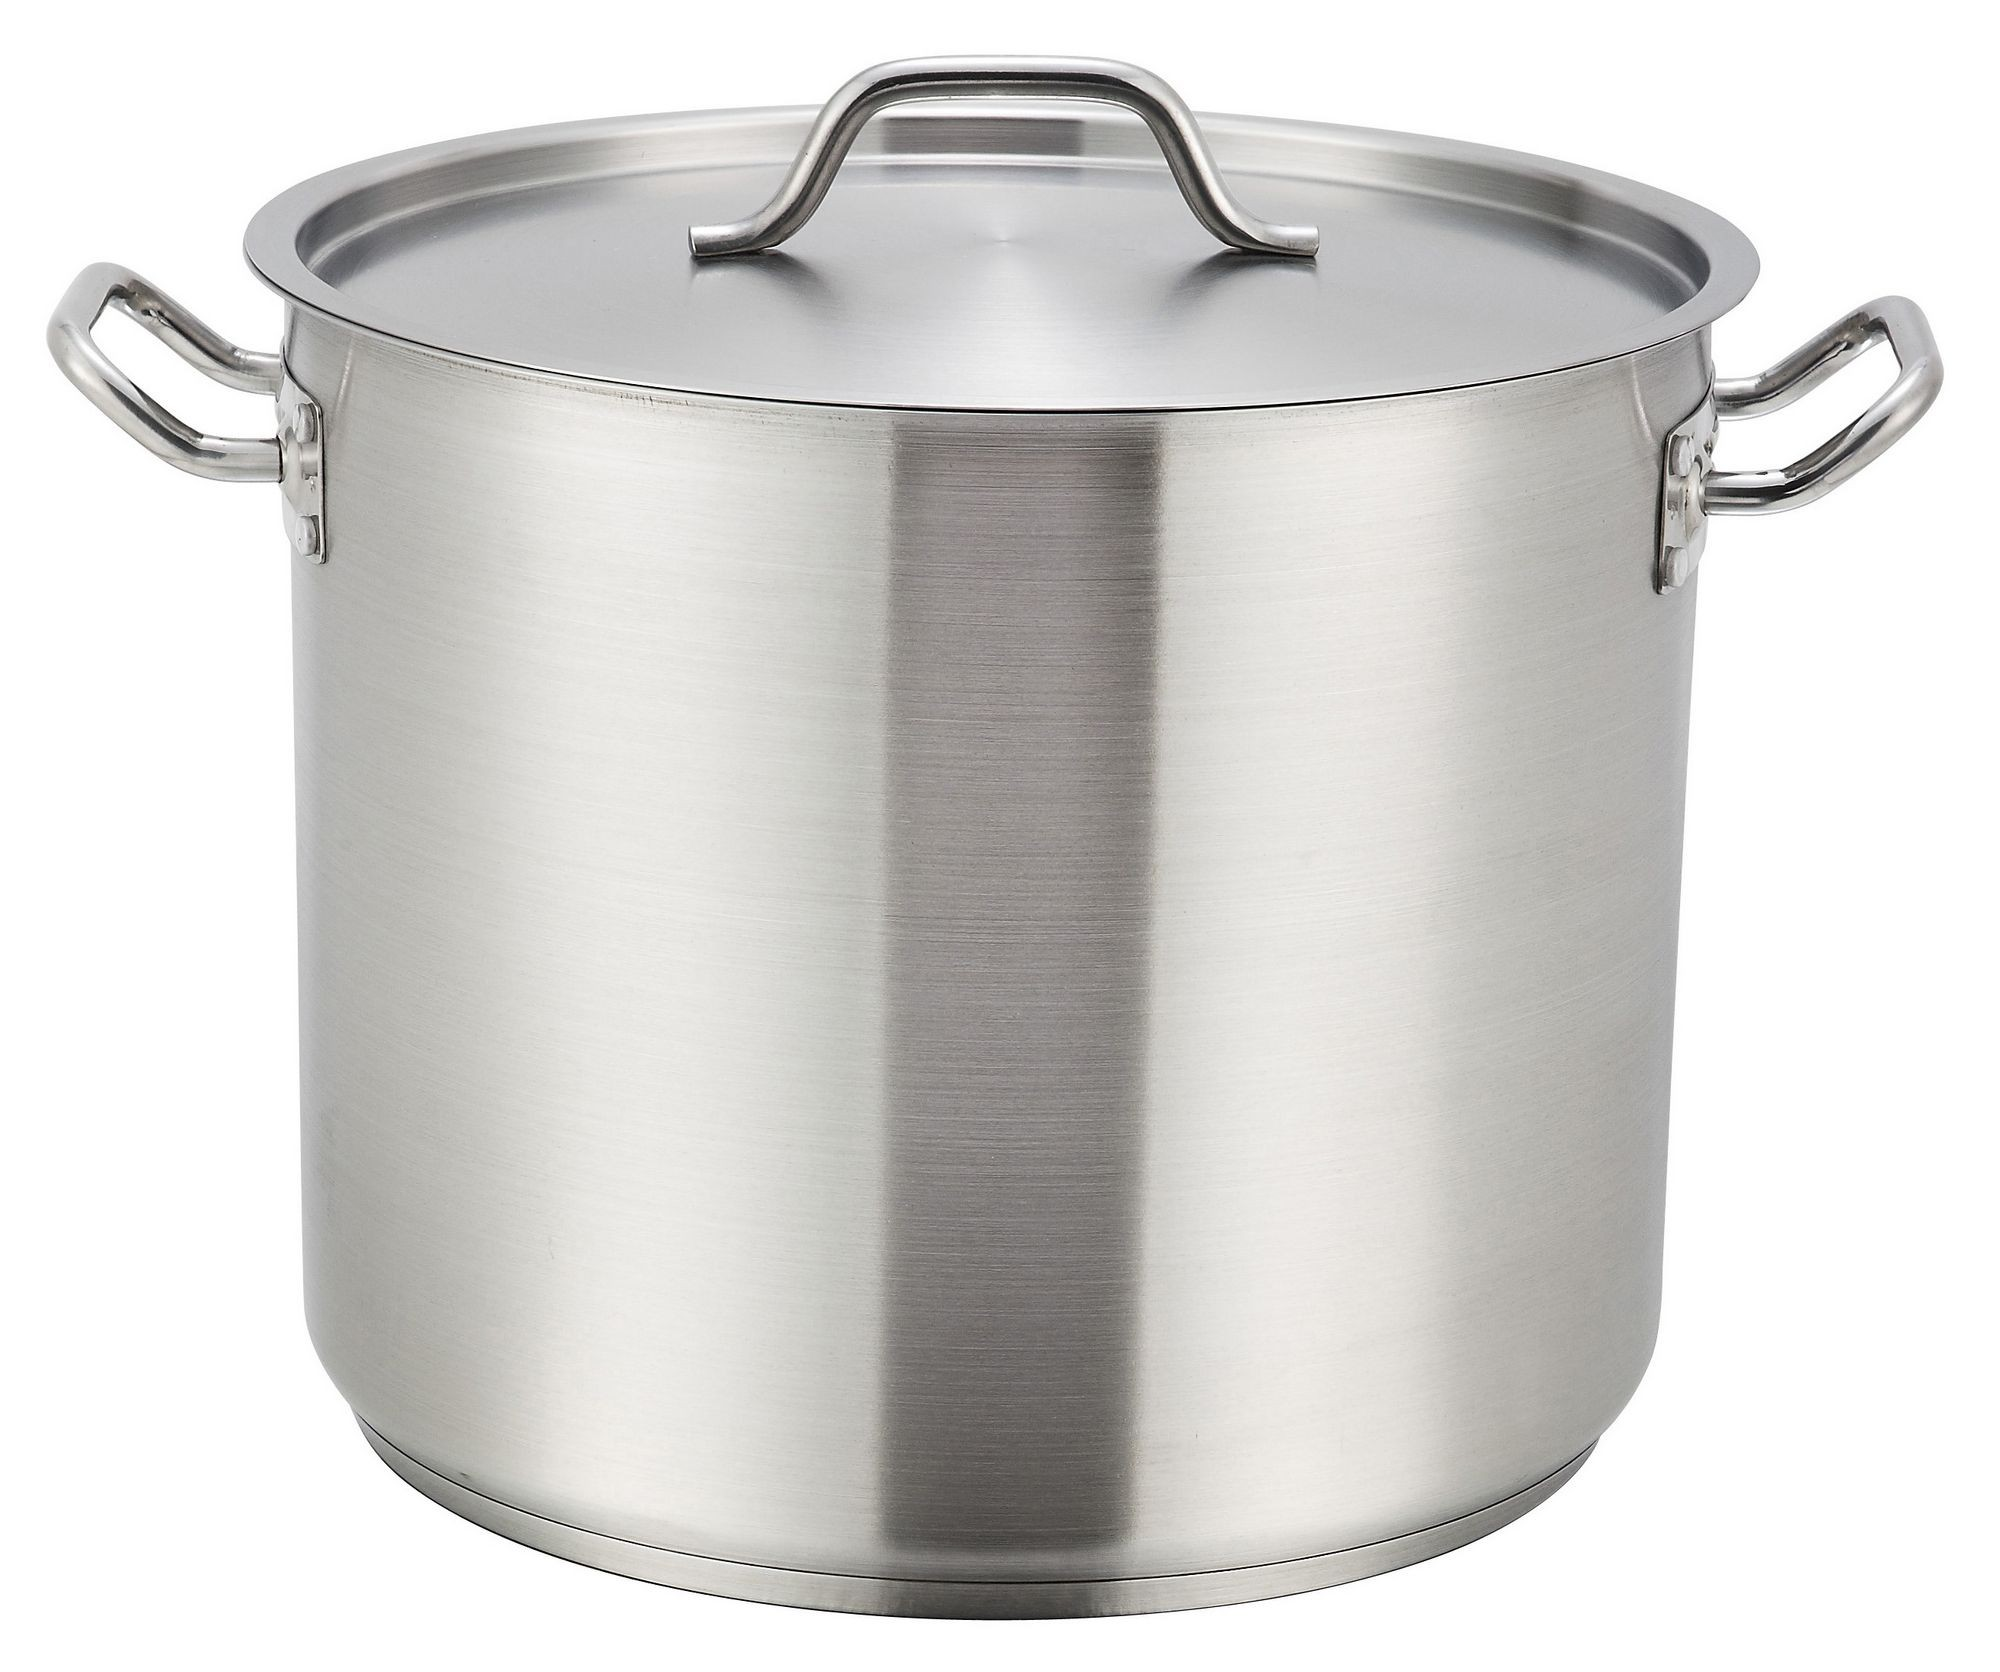 Winco SST-20 Premium Induction Stainless Steel 20 Qt. Stock Pot